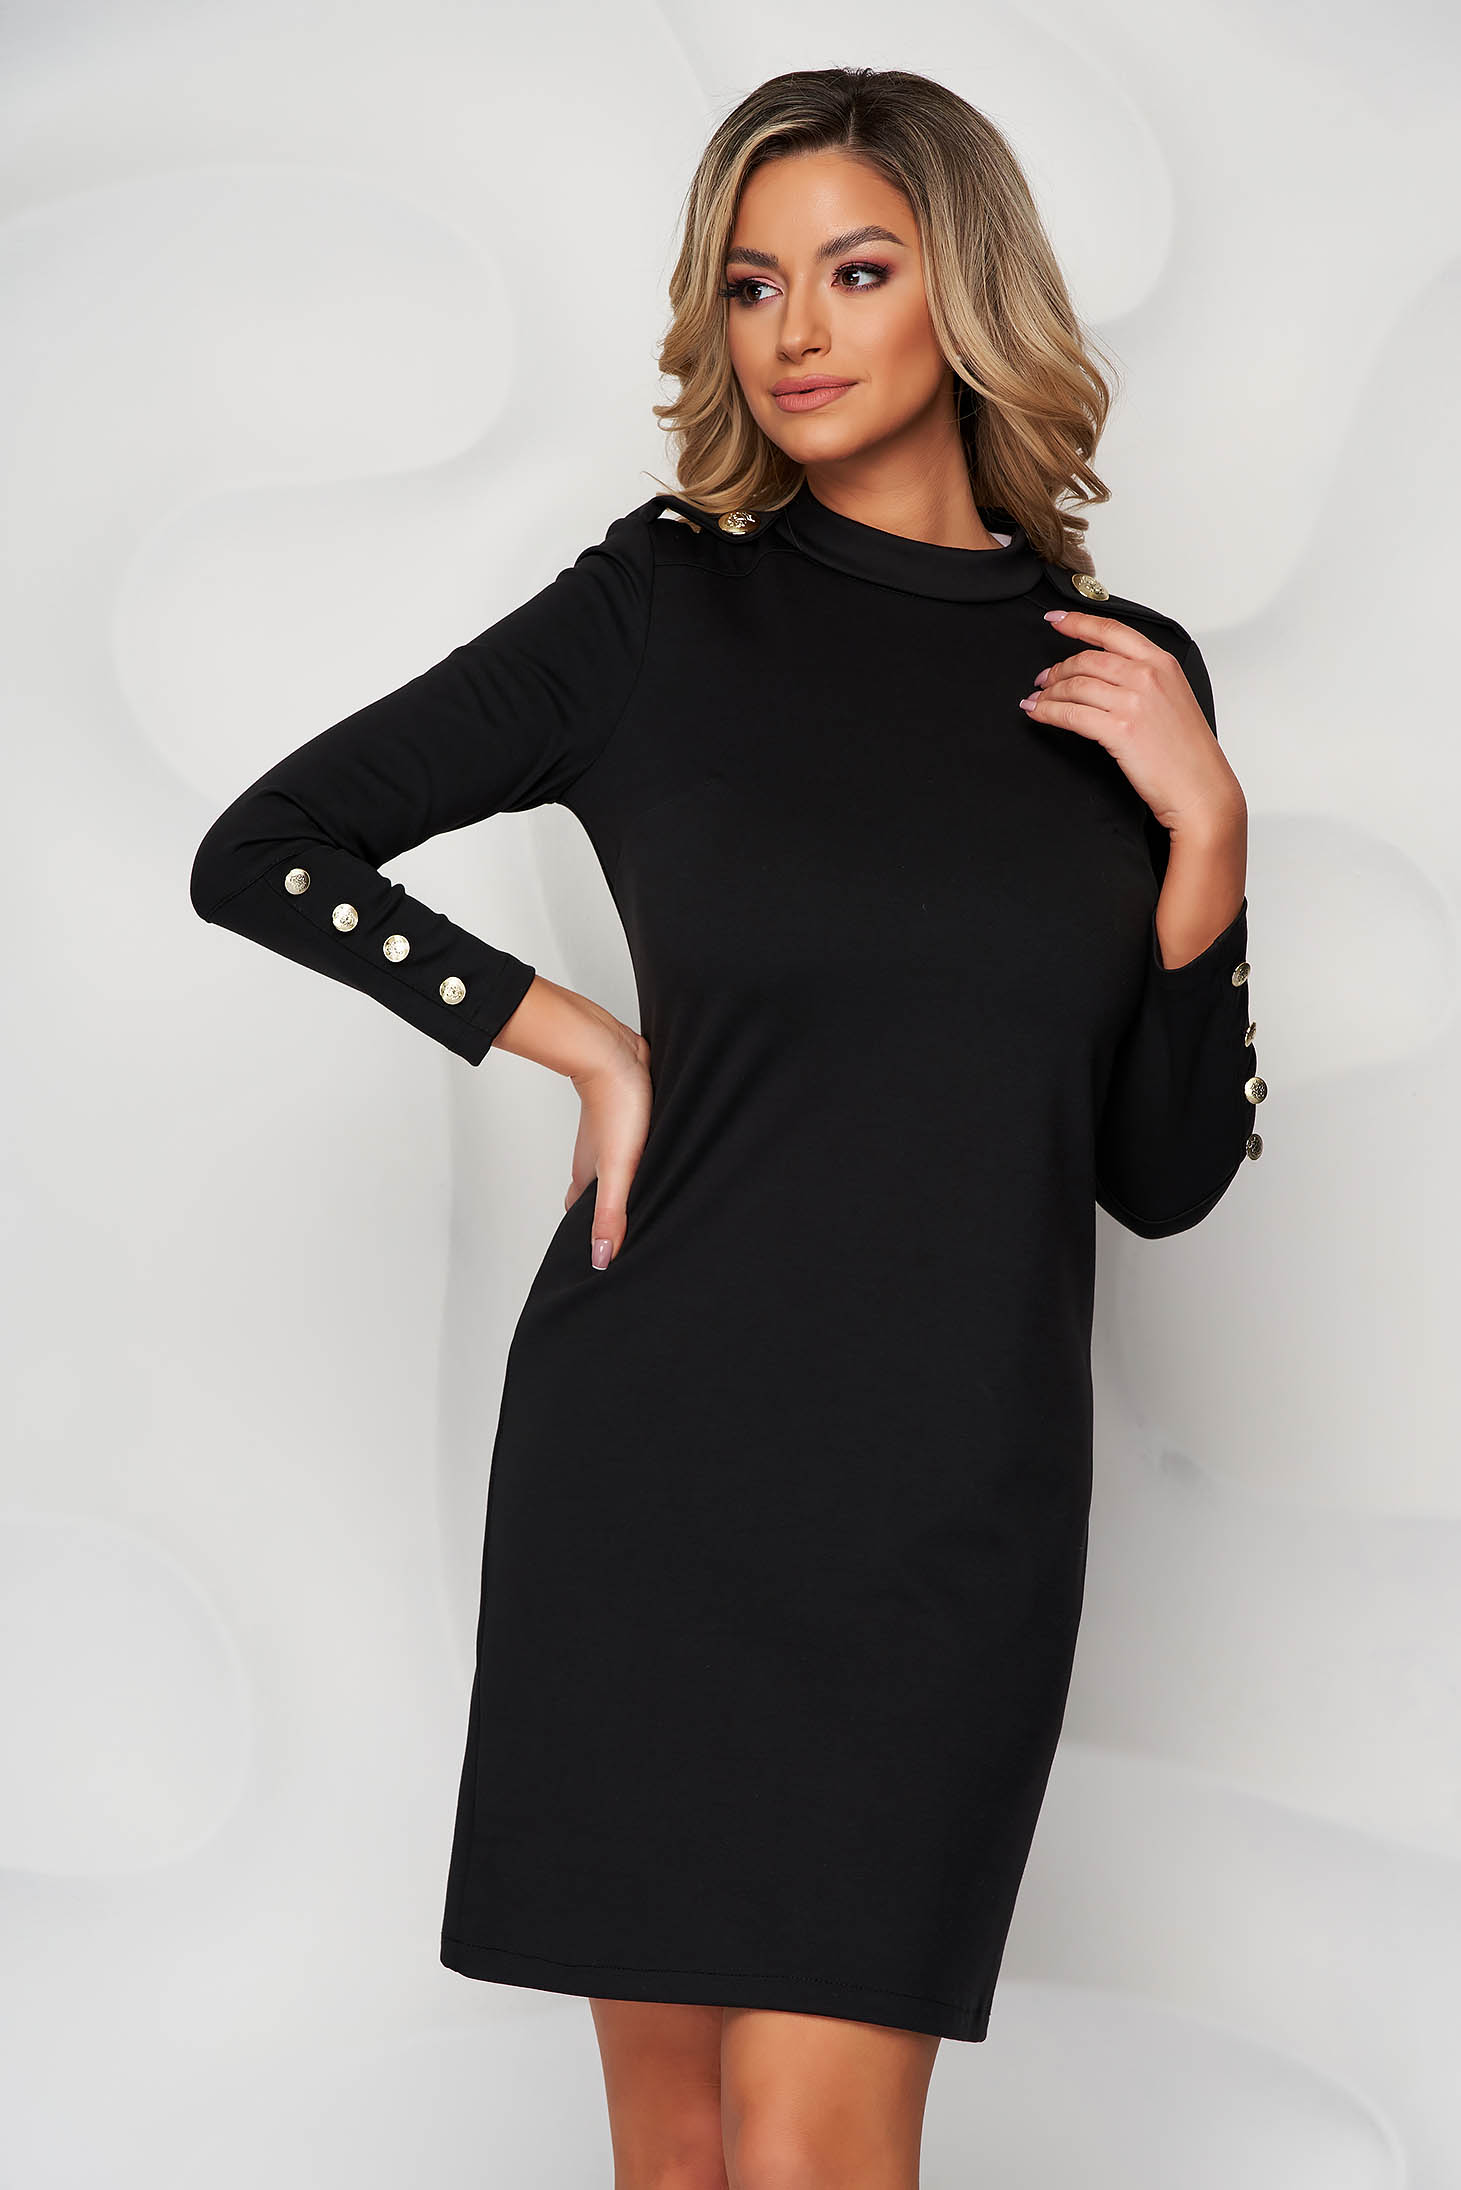 Dress black from elastic fabric straight with button accessories